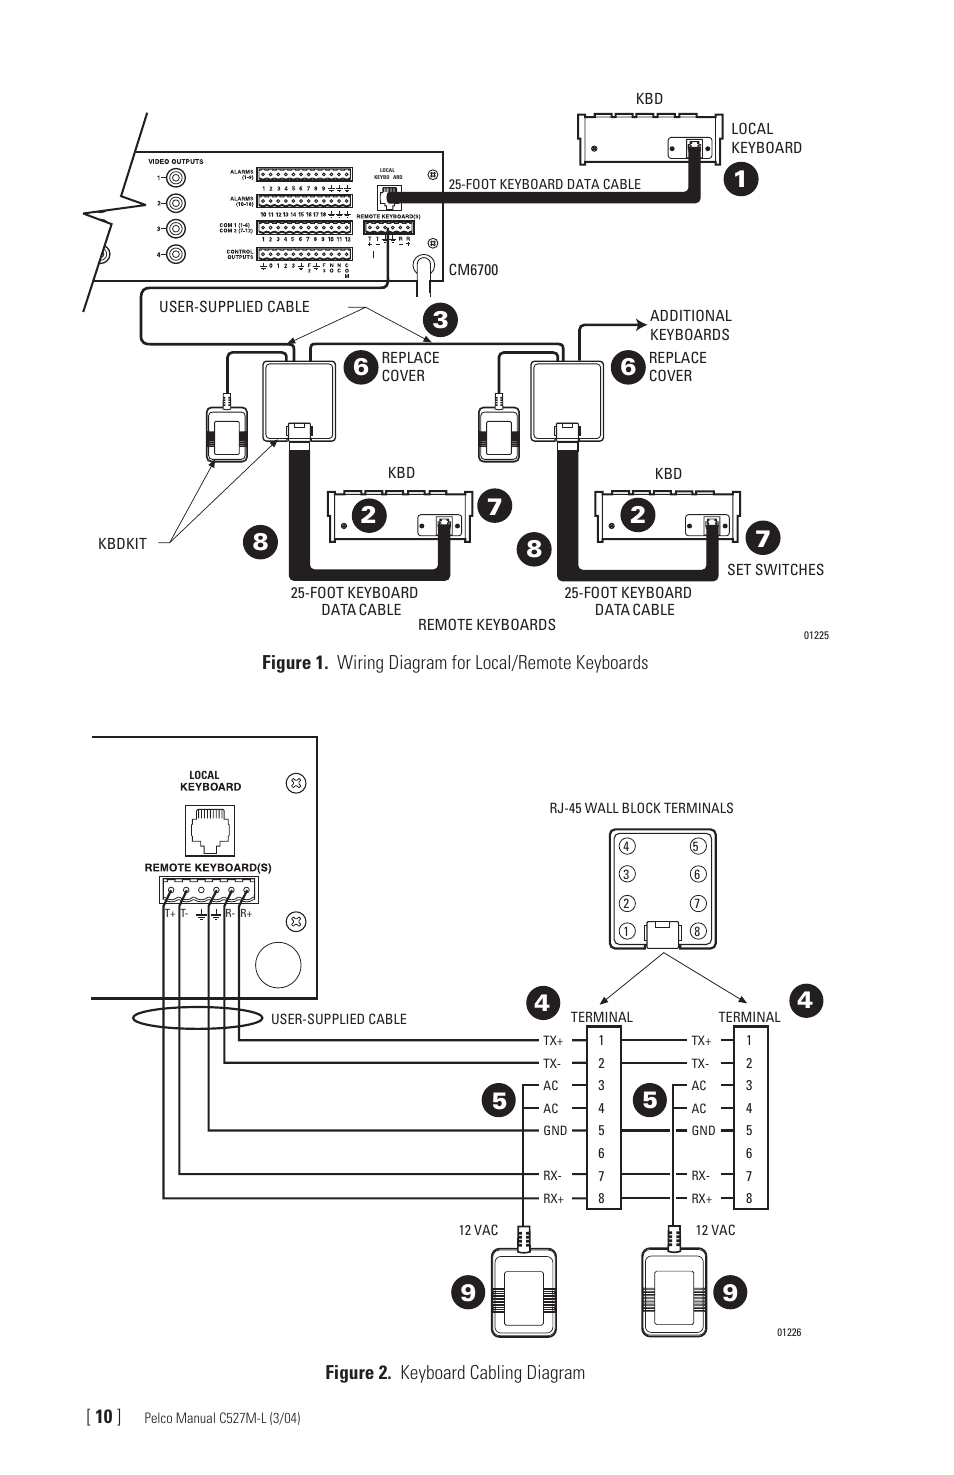 Keyboard Wiring Diagram : Panasonic ptz camera wiring diagram night vision